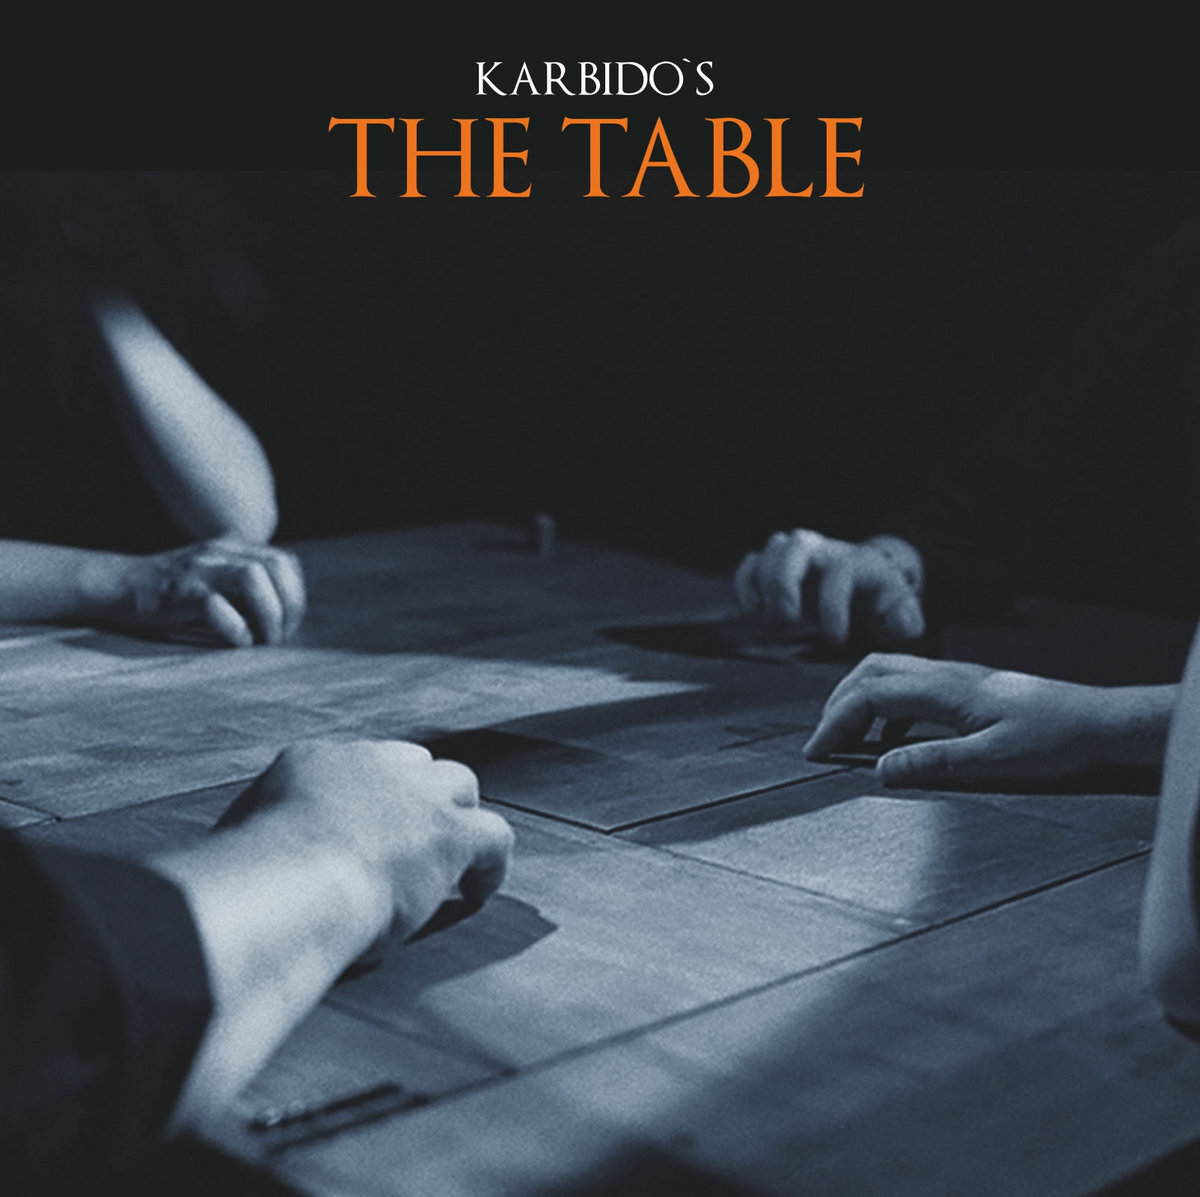 Karbido - The Table artwork